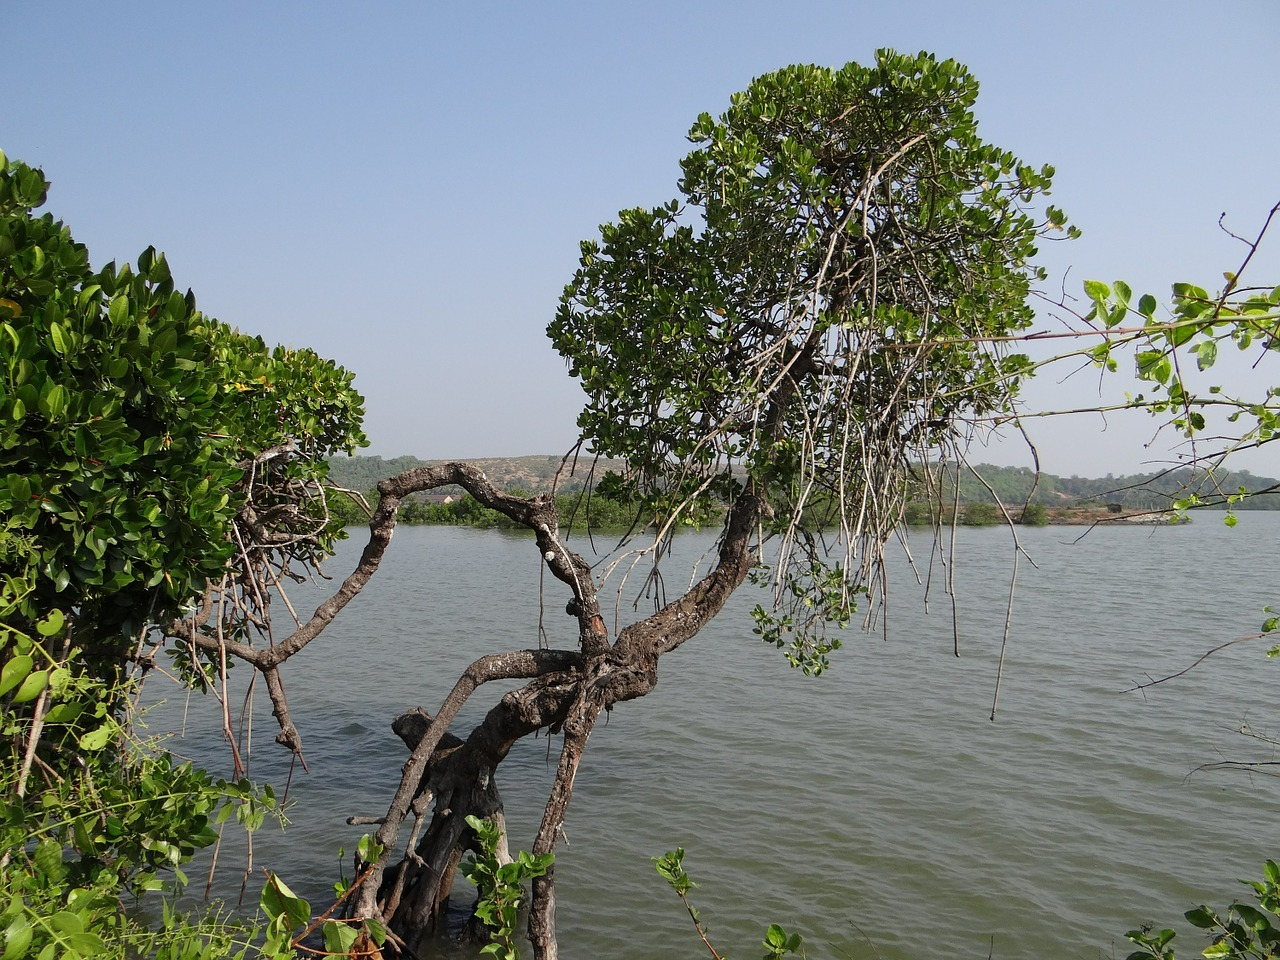 mangroves,vegetation,estuary,backwaters,tidal ingress,brackish water,aghanashini,river,nature,tropical,forest,natural,swamp,flora,gokarna,india,free pictures, free photos, free images, royalty free, free illustrations, public domain